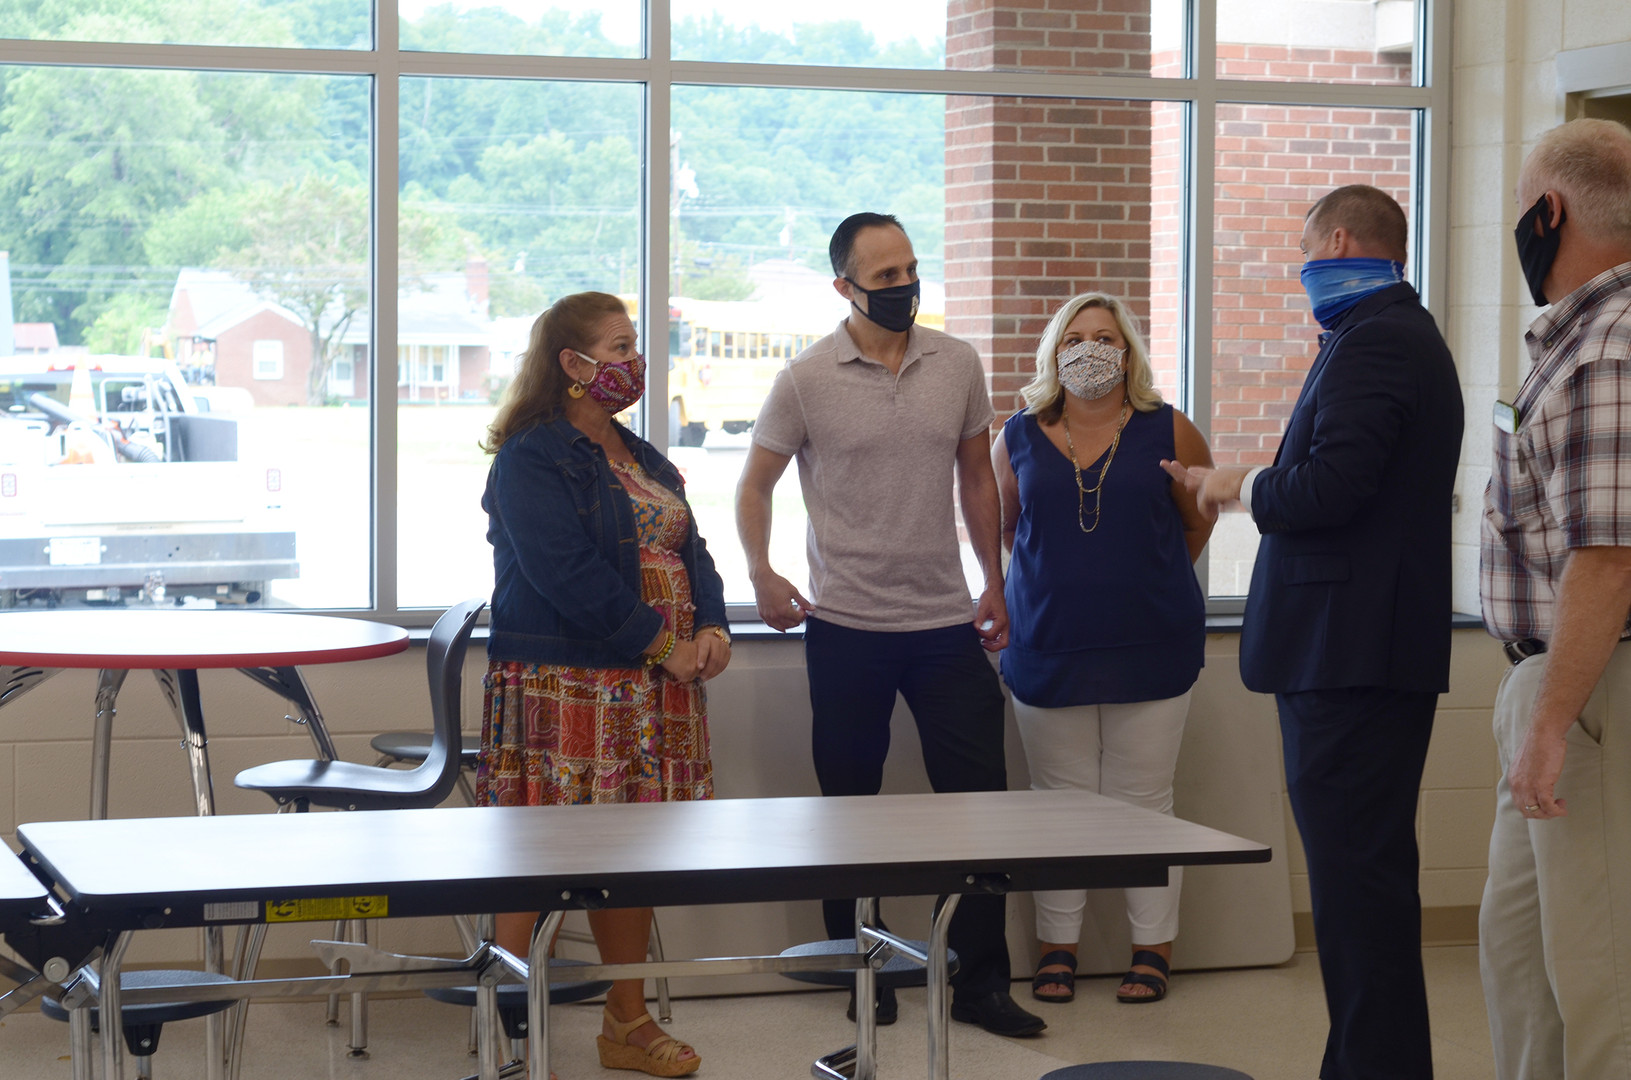 From left, Old Fort Elementary Principal Jill Ward, Josh Dobson, N.C. Representative and candidate for Commissioner of Labor, and his wife Valerie Dobson,  McDowell County Schools Superintendent Mark Garrett, and McDowell County Schools Board Member Patrick Ellis discuss the building project in the school's new cafeteria.